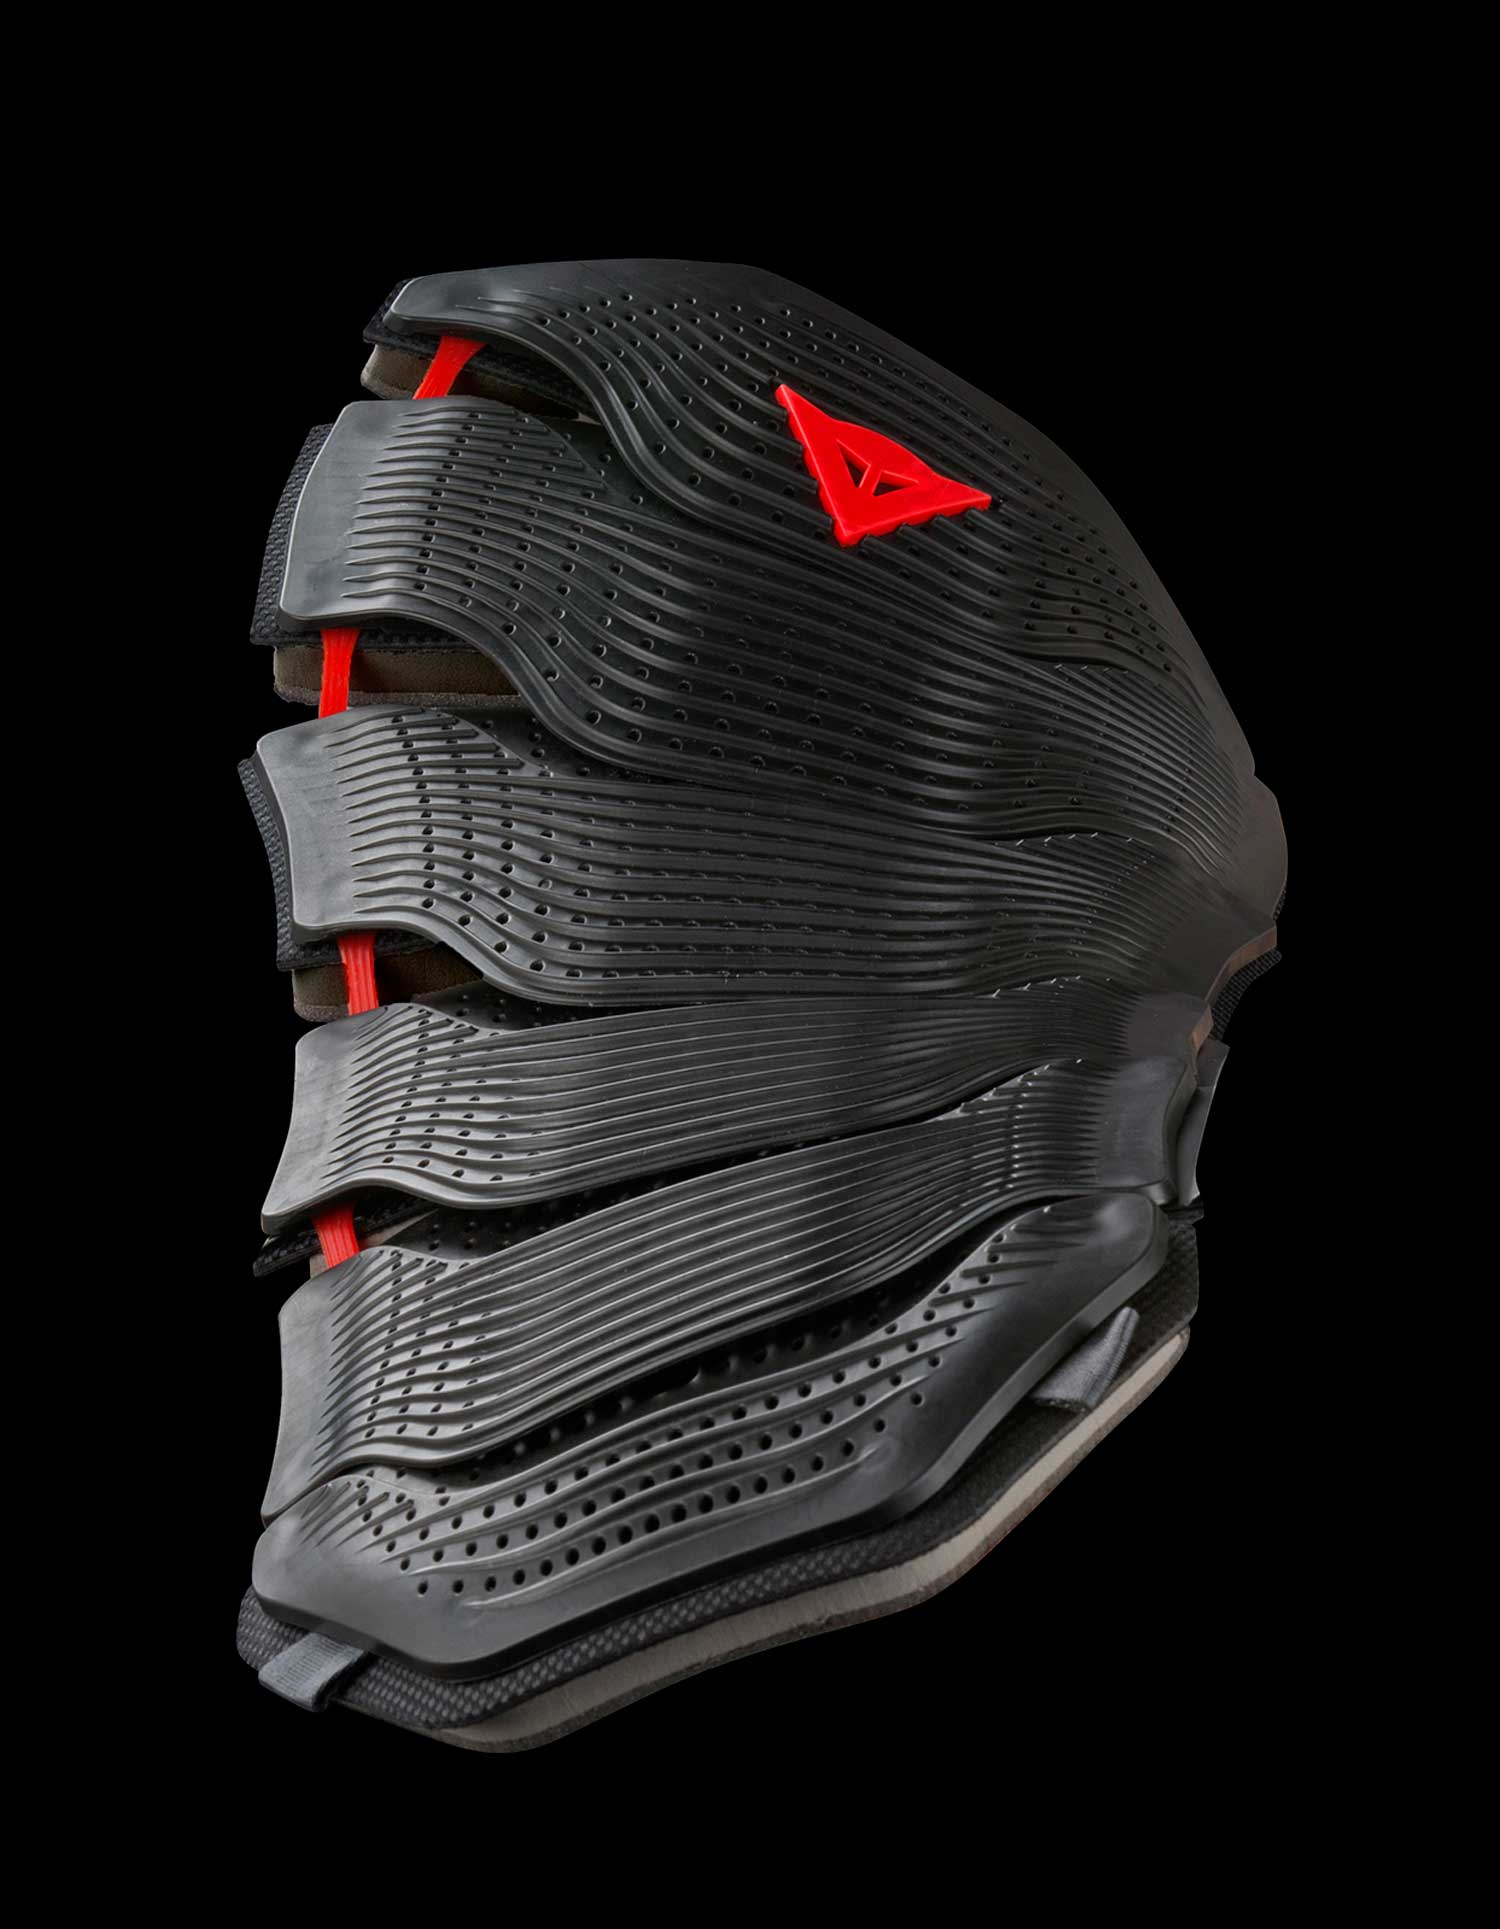 Dainese back protector003